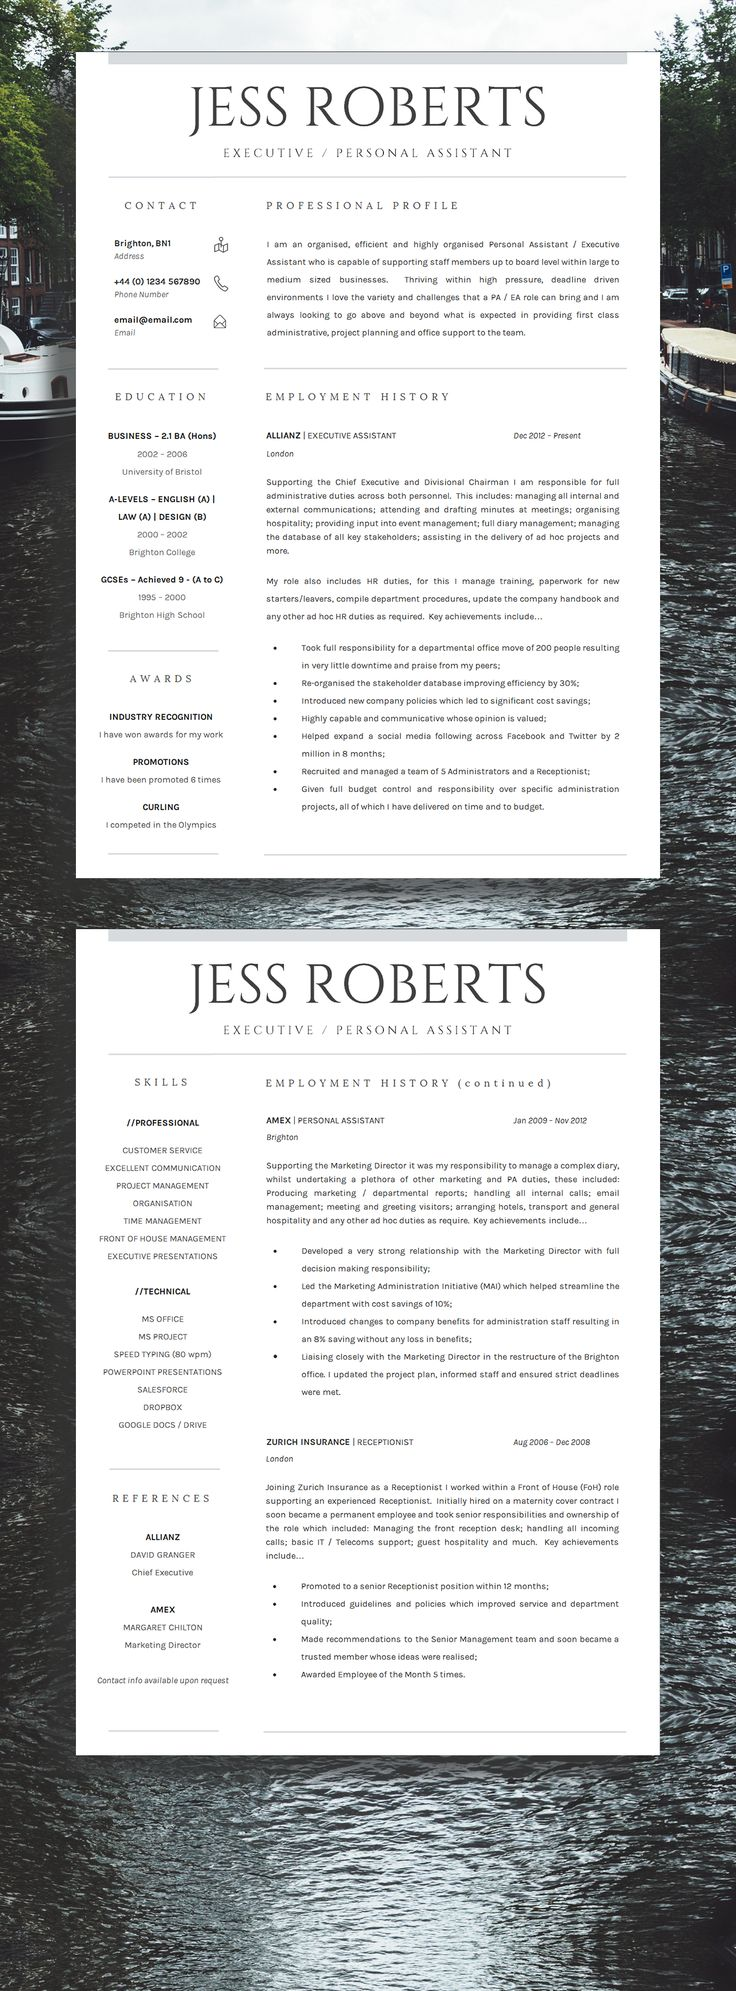 Cool Resumes: Sometimes the most striking resumes are the most simple.                                                                                                                                                      More